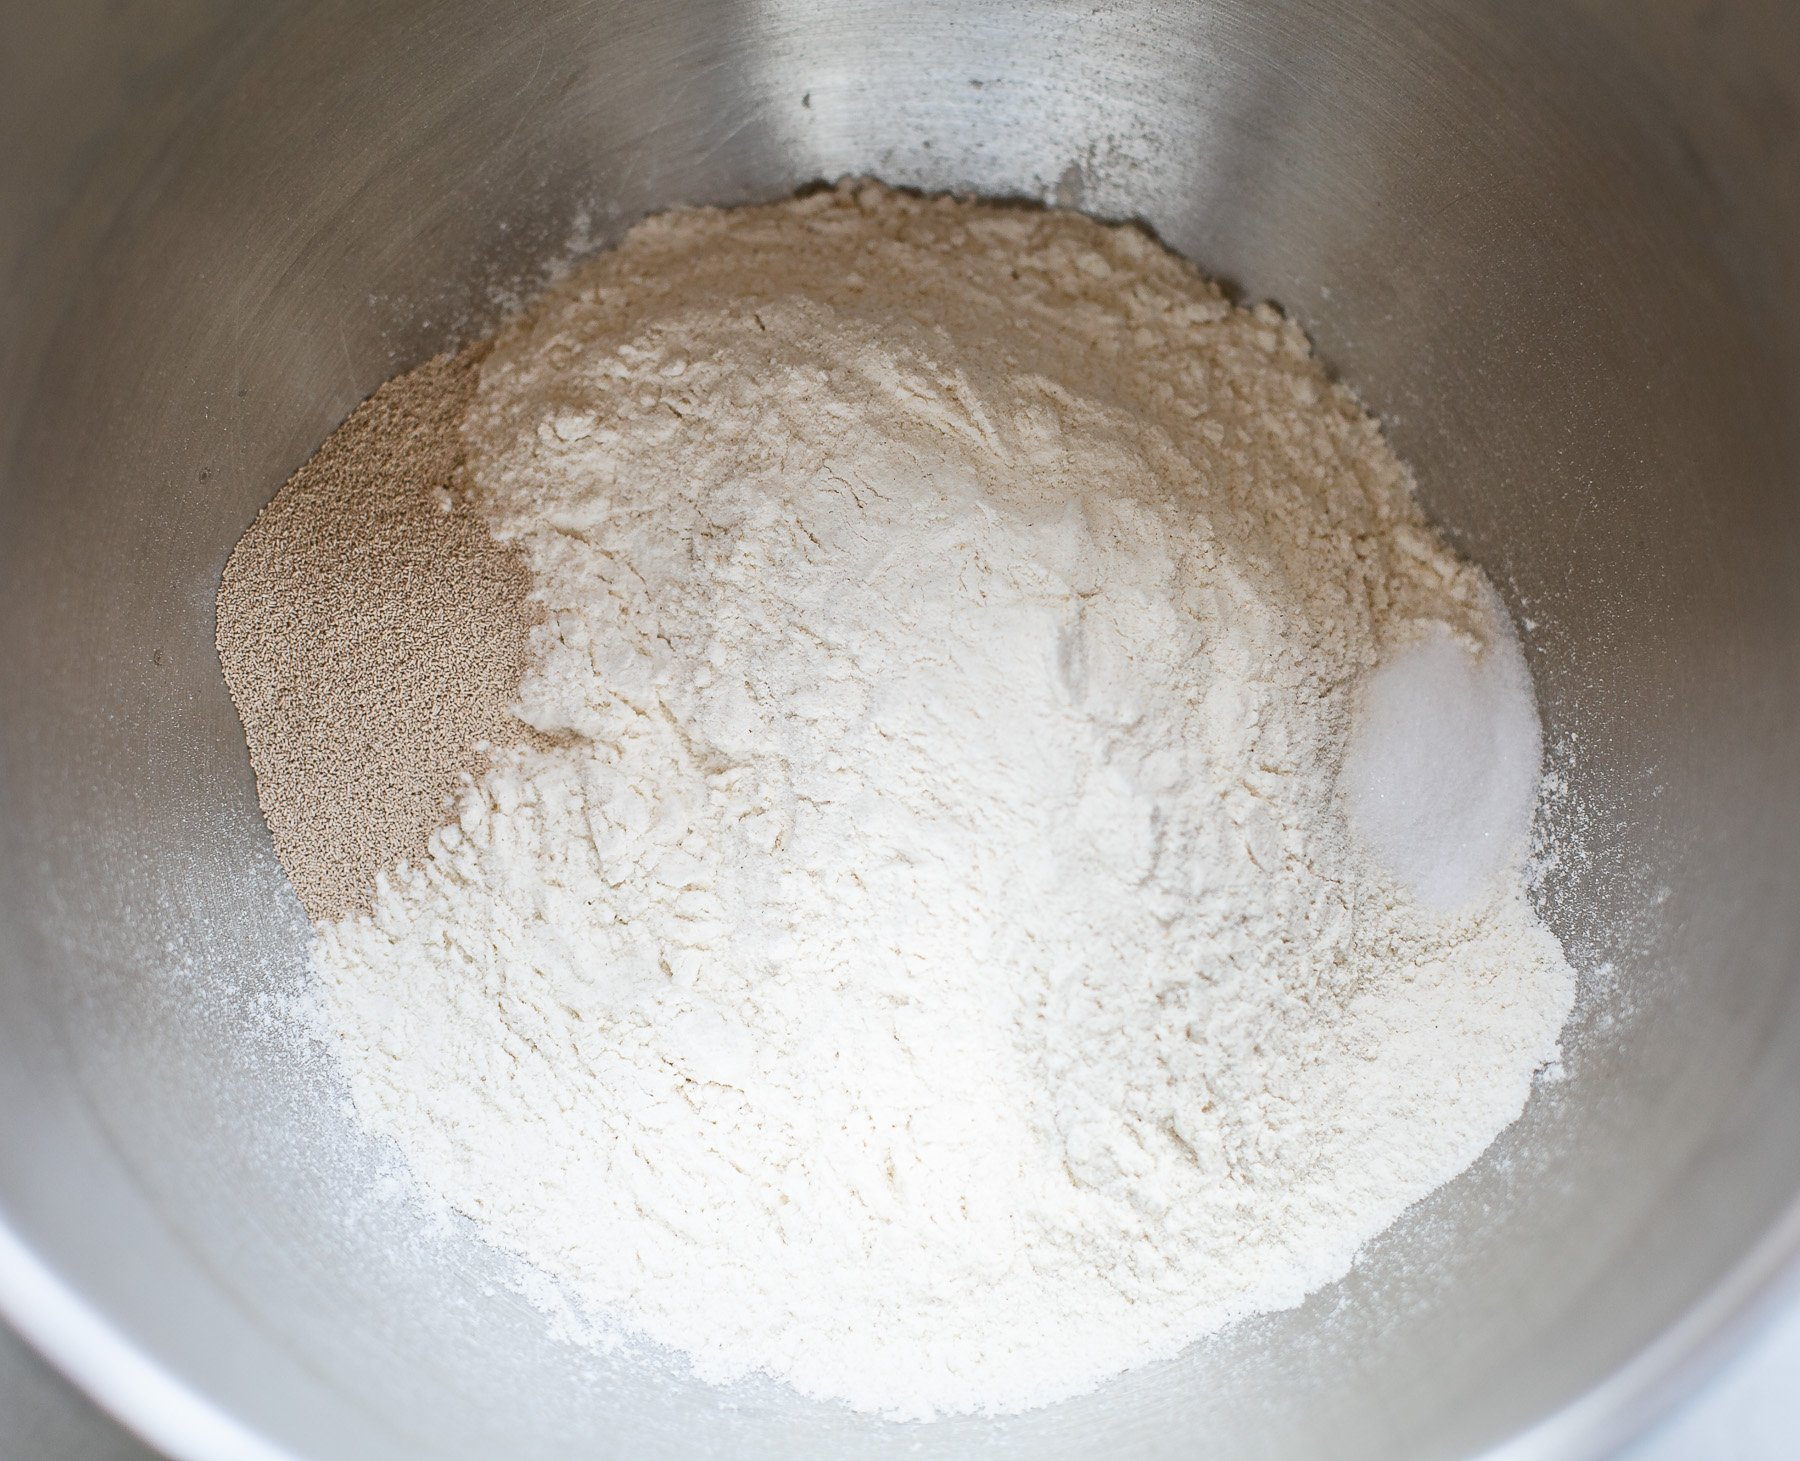 Flour yeast and salt in a mixer bowl to make French baguettes